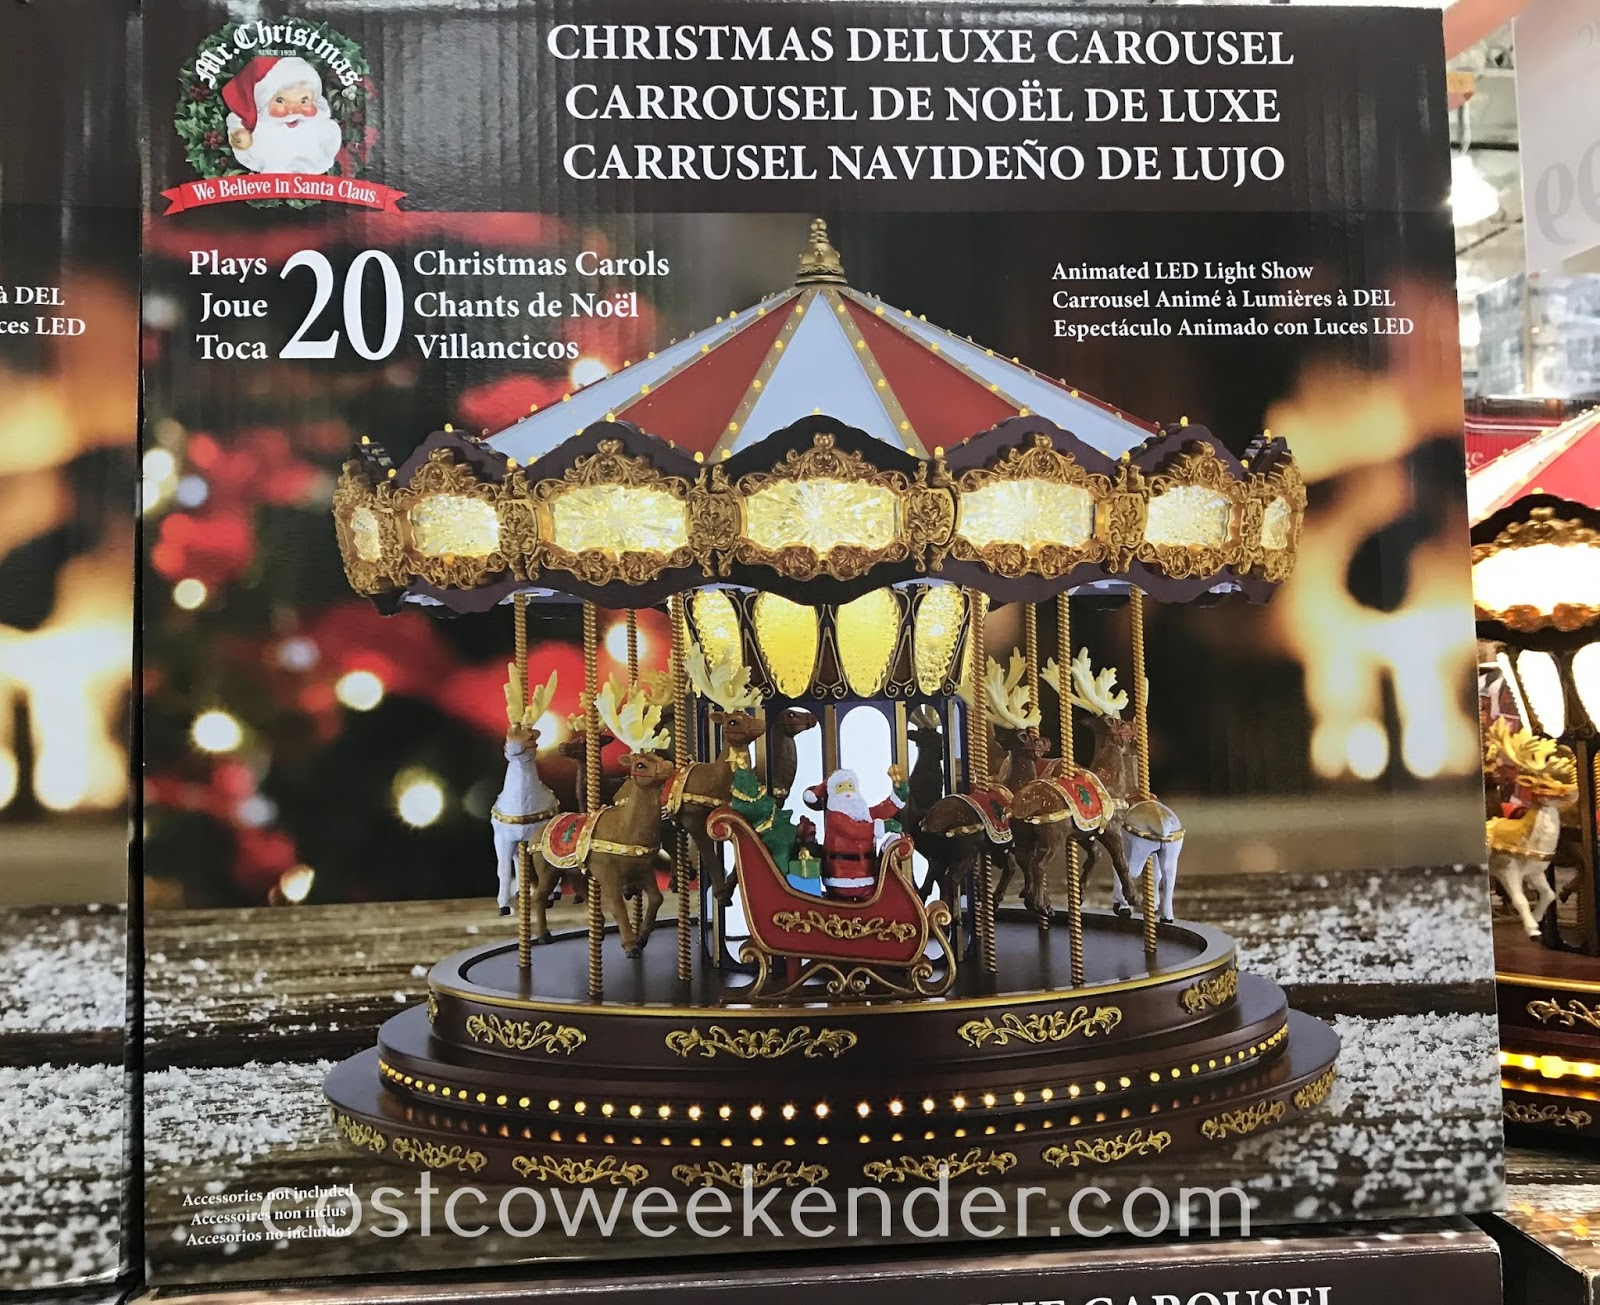 Costco 2002054 - Mr. Christmas Deluxe Carousel: perfect for the holidays